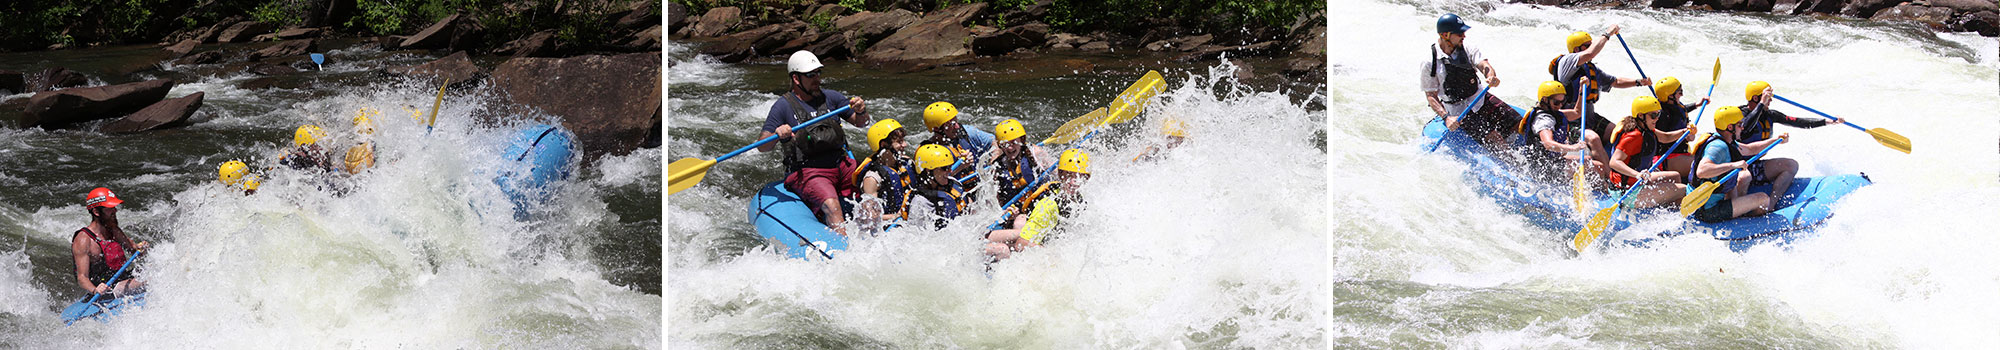 Ocoee River Rafting Center